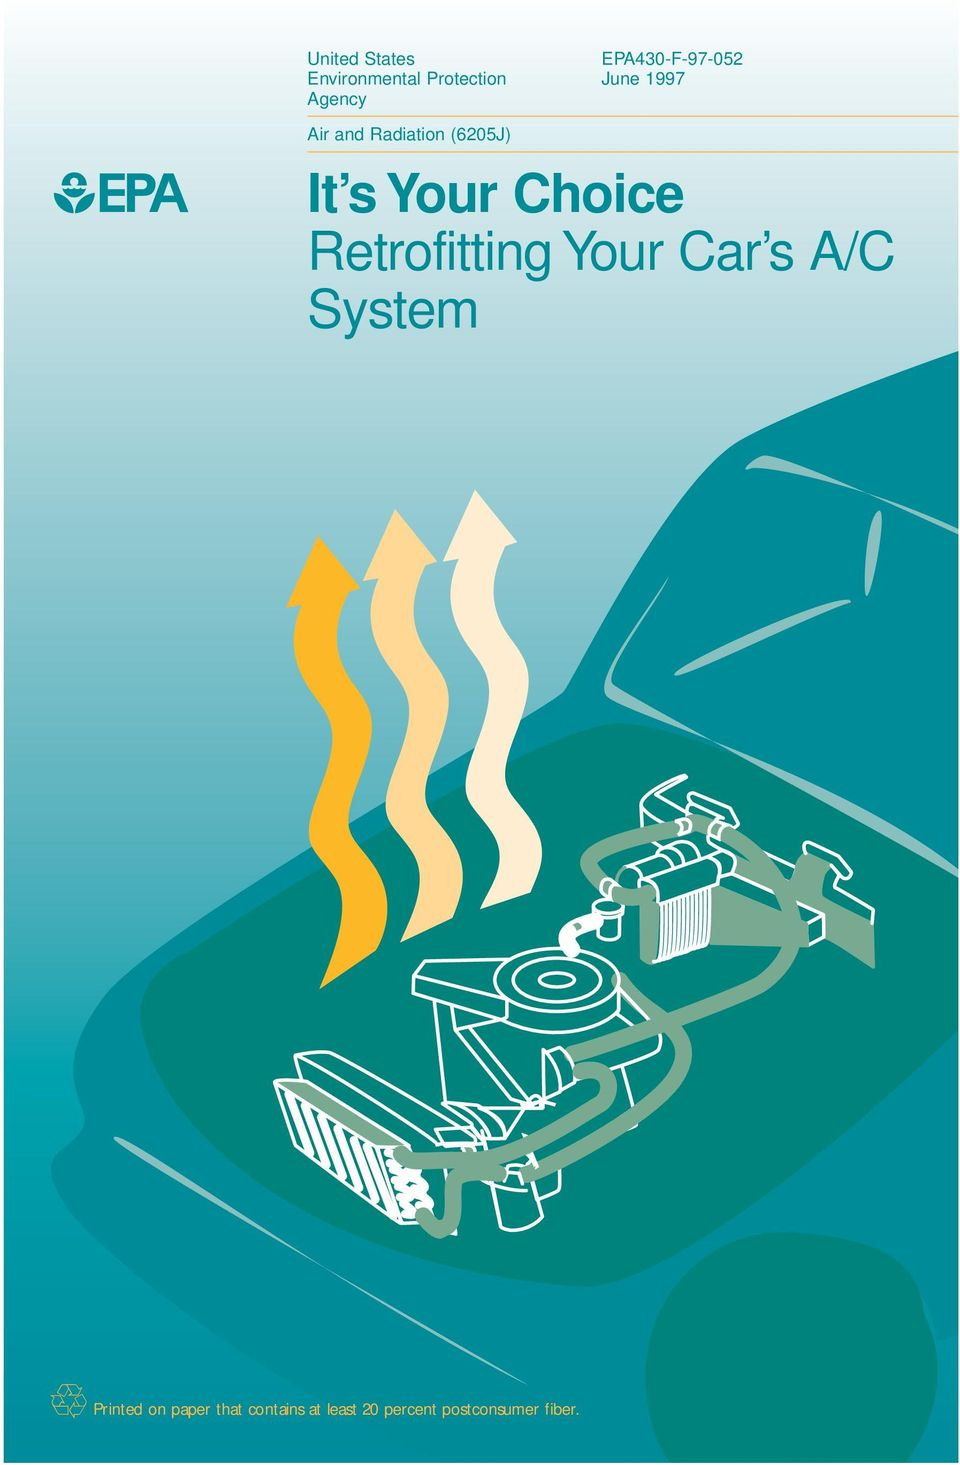 Your Choice Retrofitting Your Car s A/C System 2 Printed